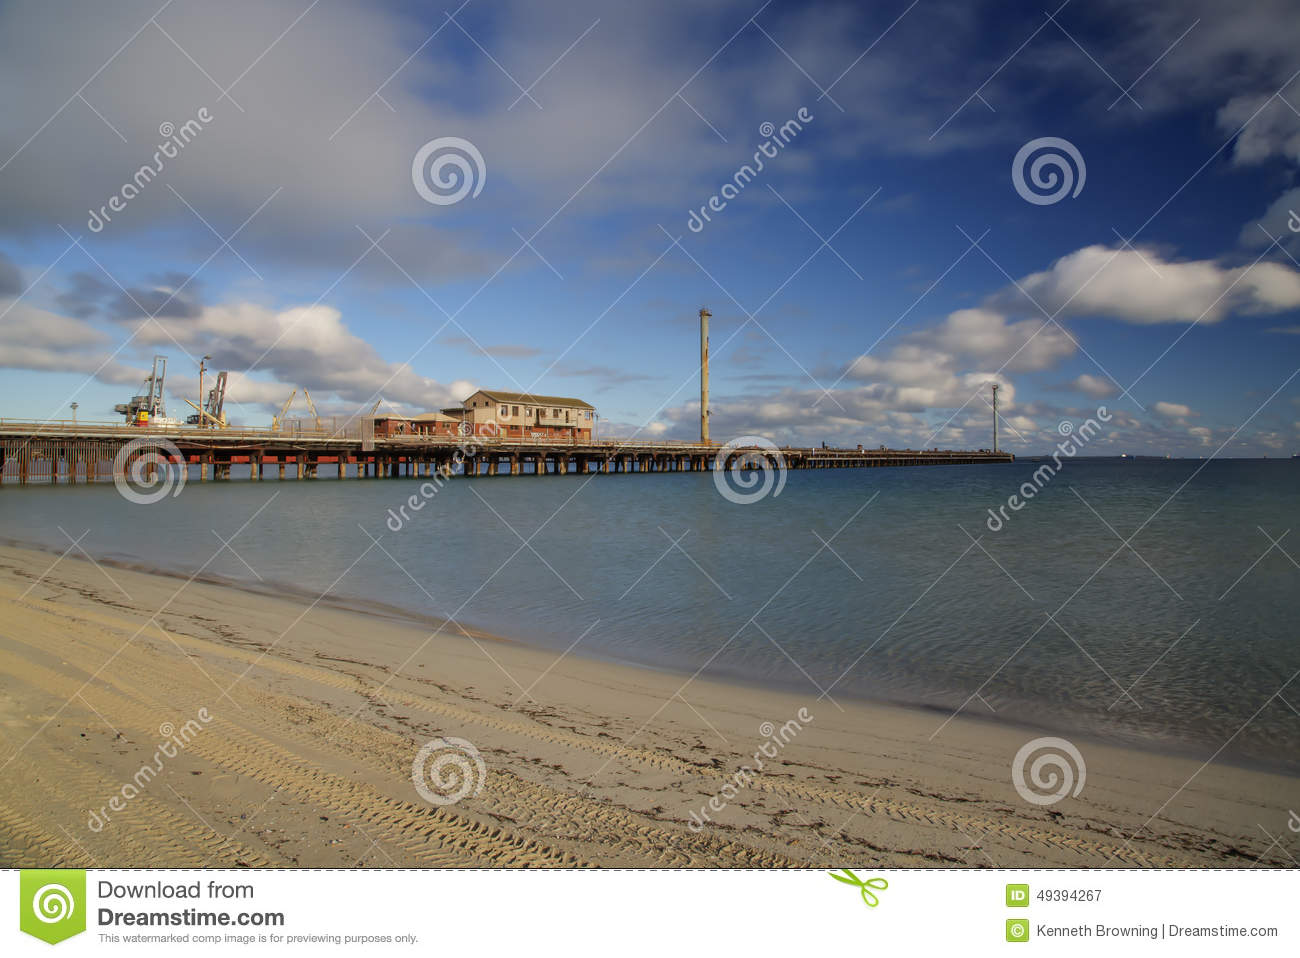 Jetty stock image  Image of water, sand, jetty, clouds